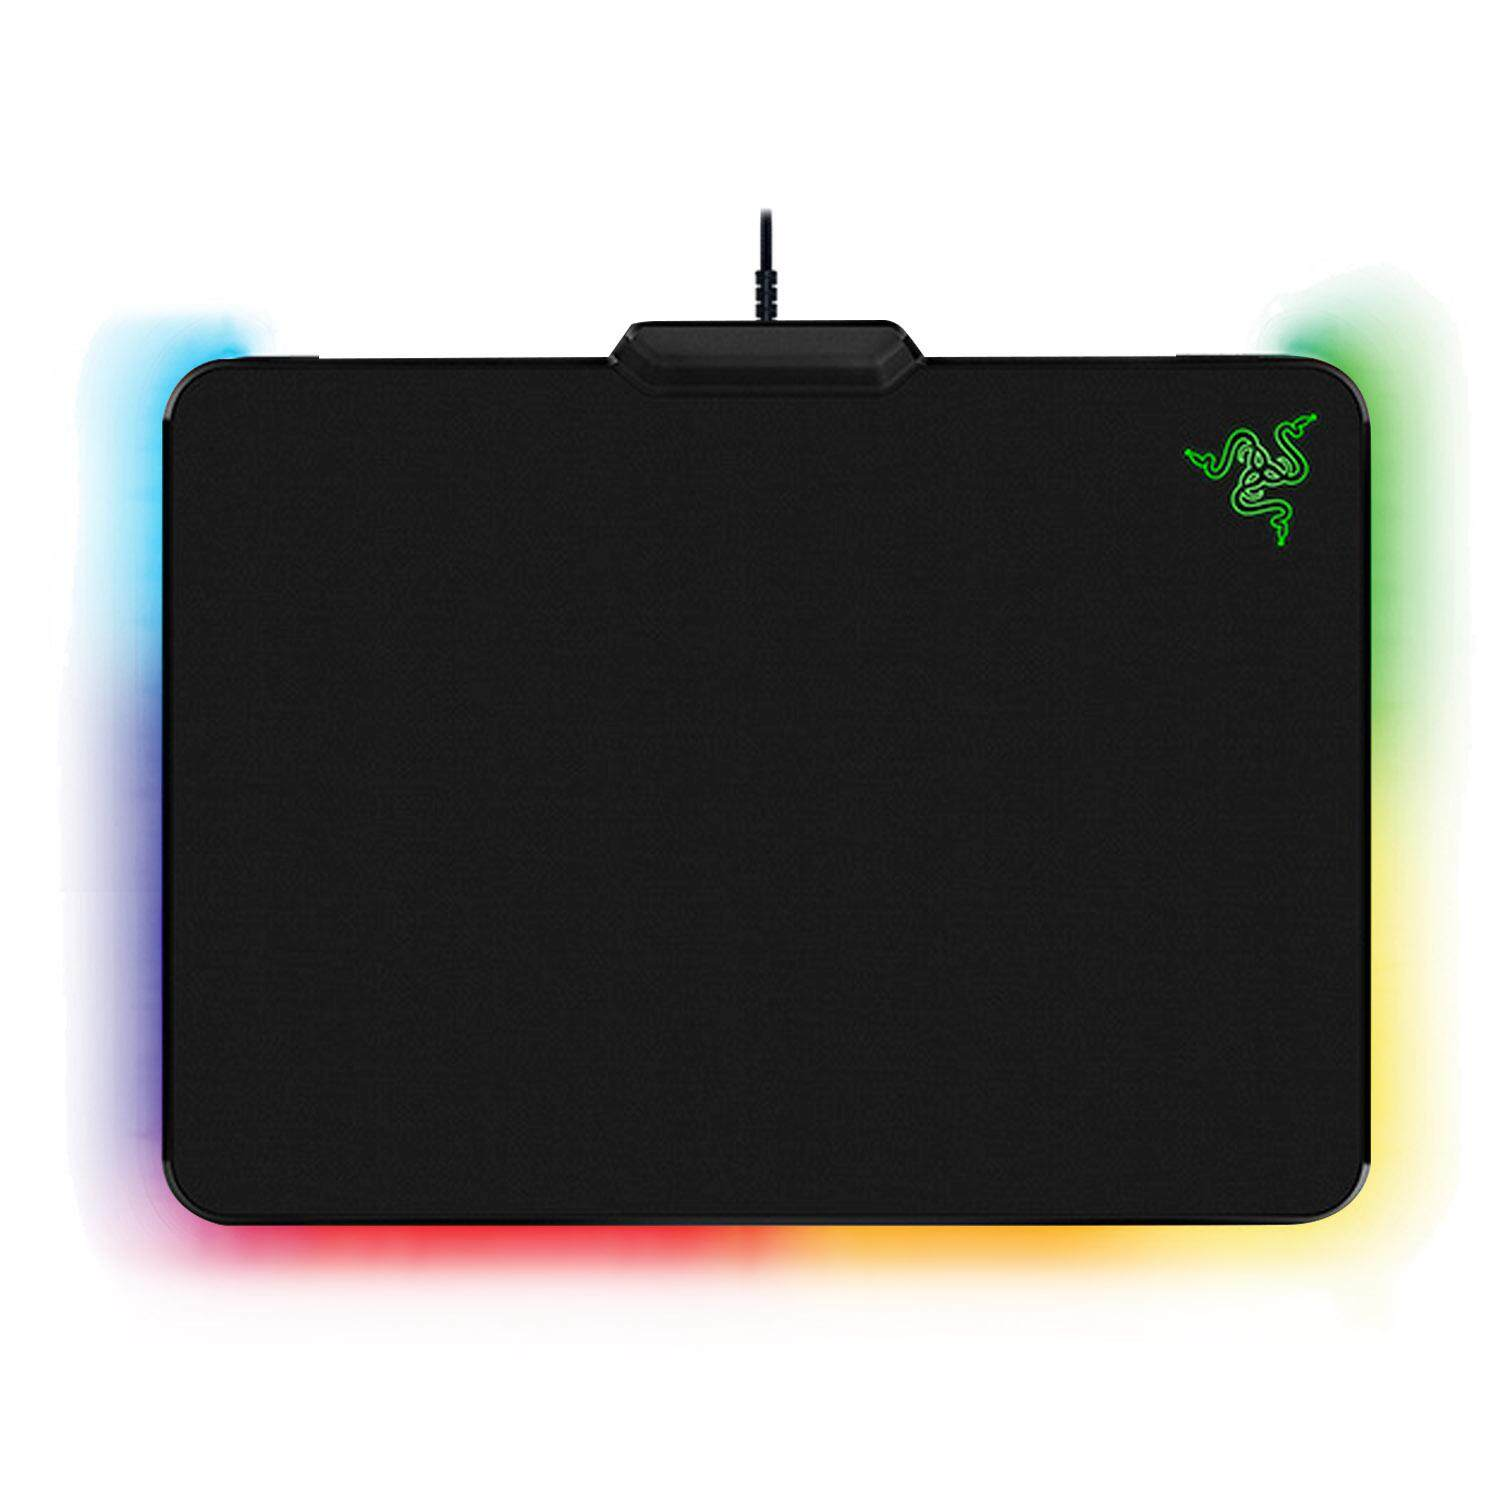 USB Wired LED RGB Colorful Lighting Gaming Mousepad Mouse Pad Non-Slip Laptop Computer Mice Mat 250 x 350 x 4mm Malaysia